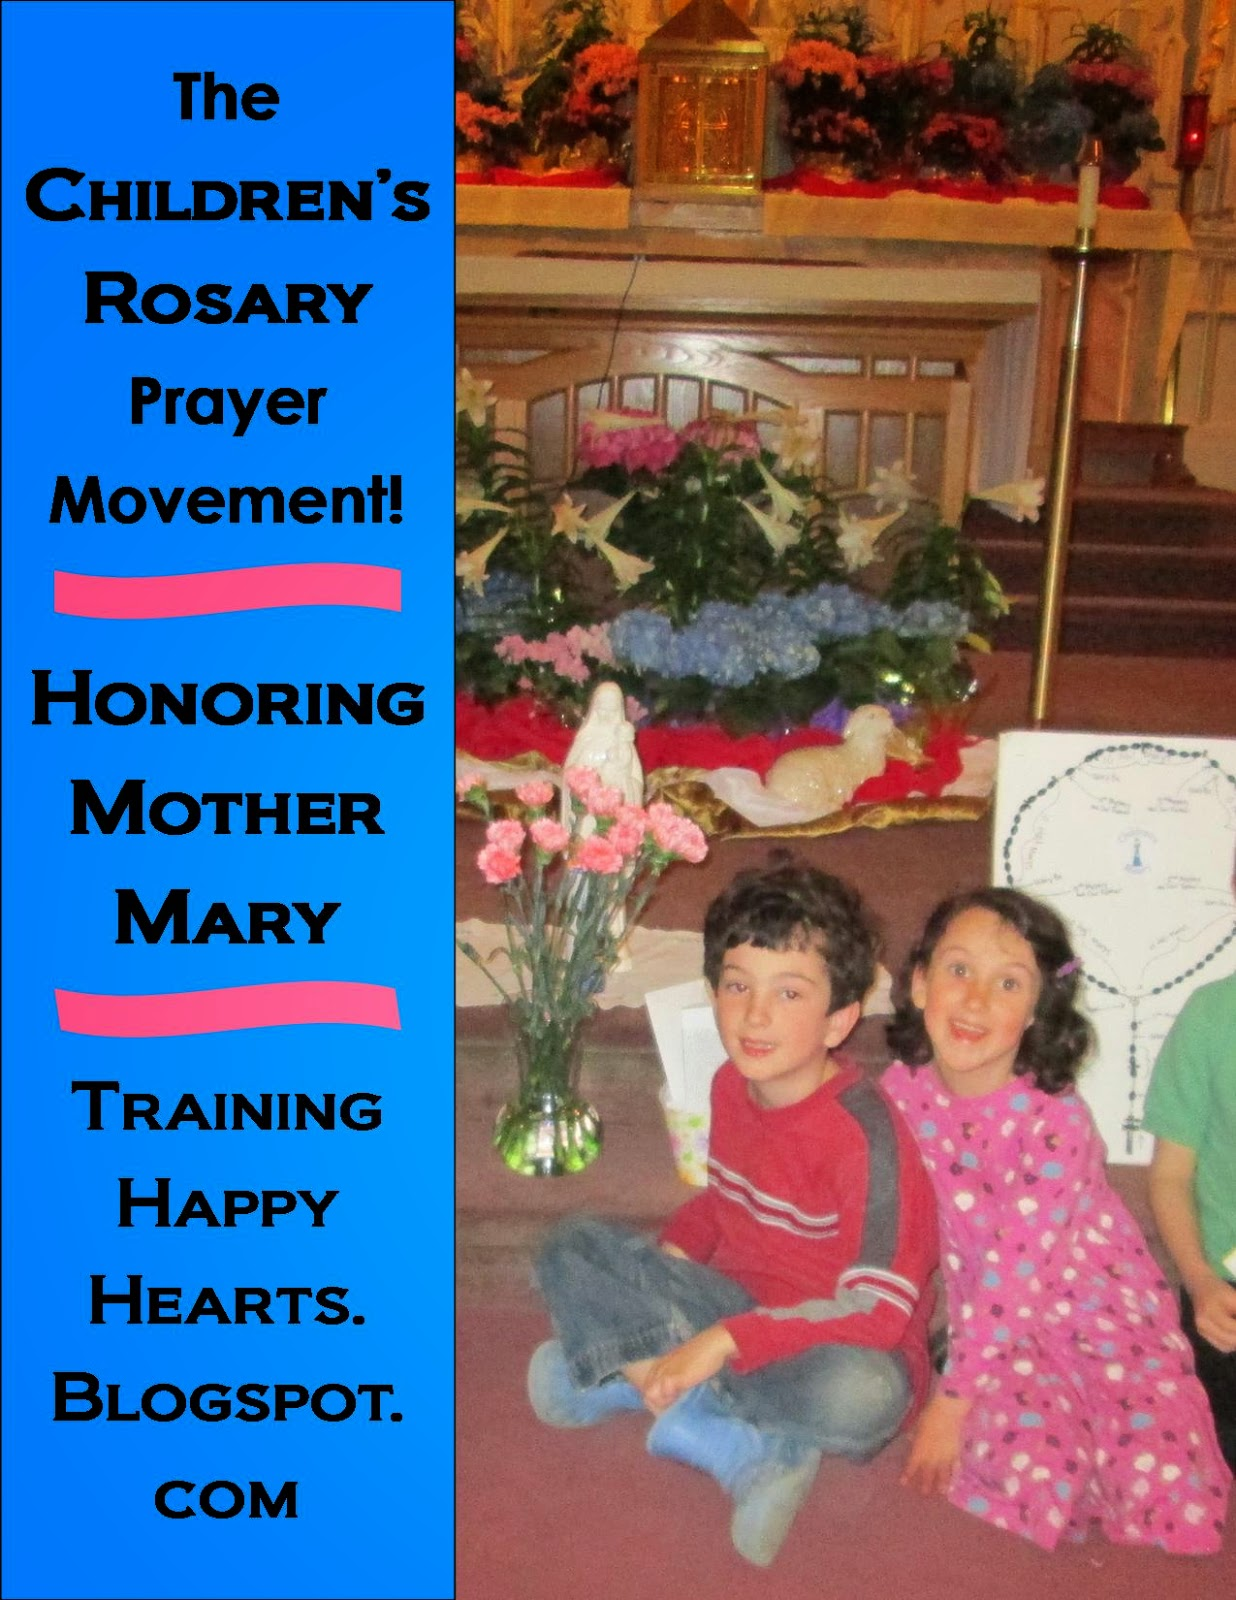 http://traininghappyhearts.blogspot.com/2014/05/joining-childrens-rosary-prayer-group.html